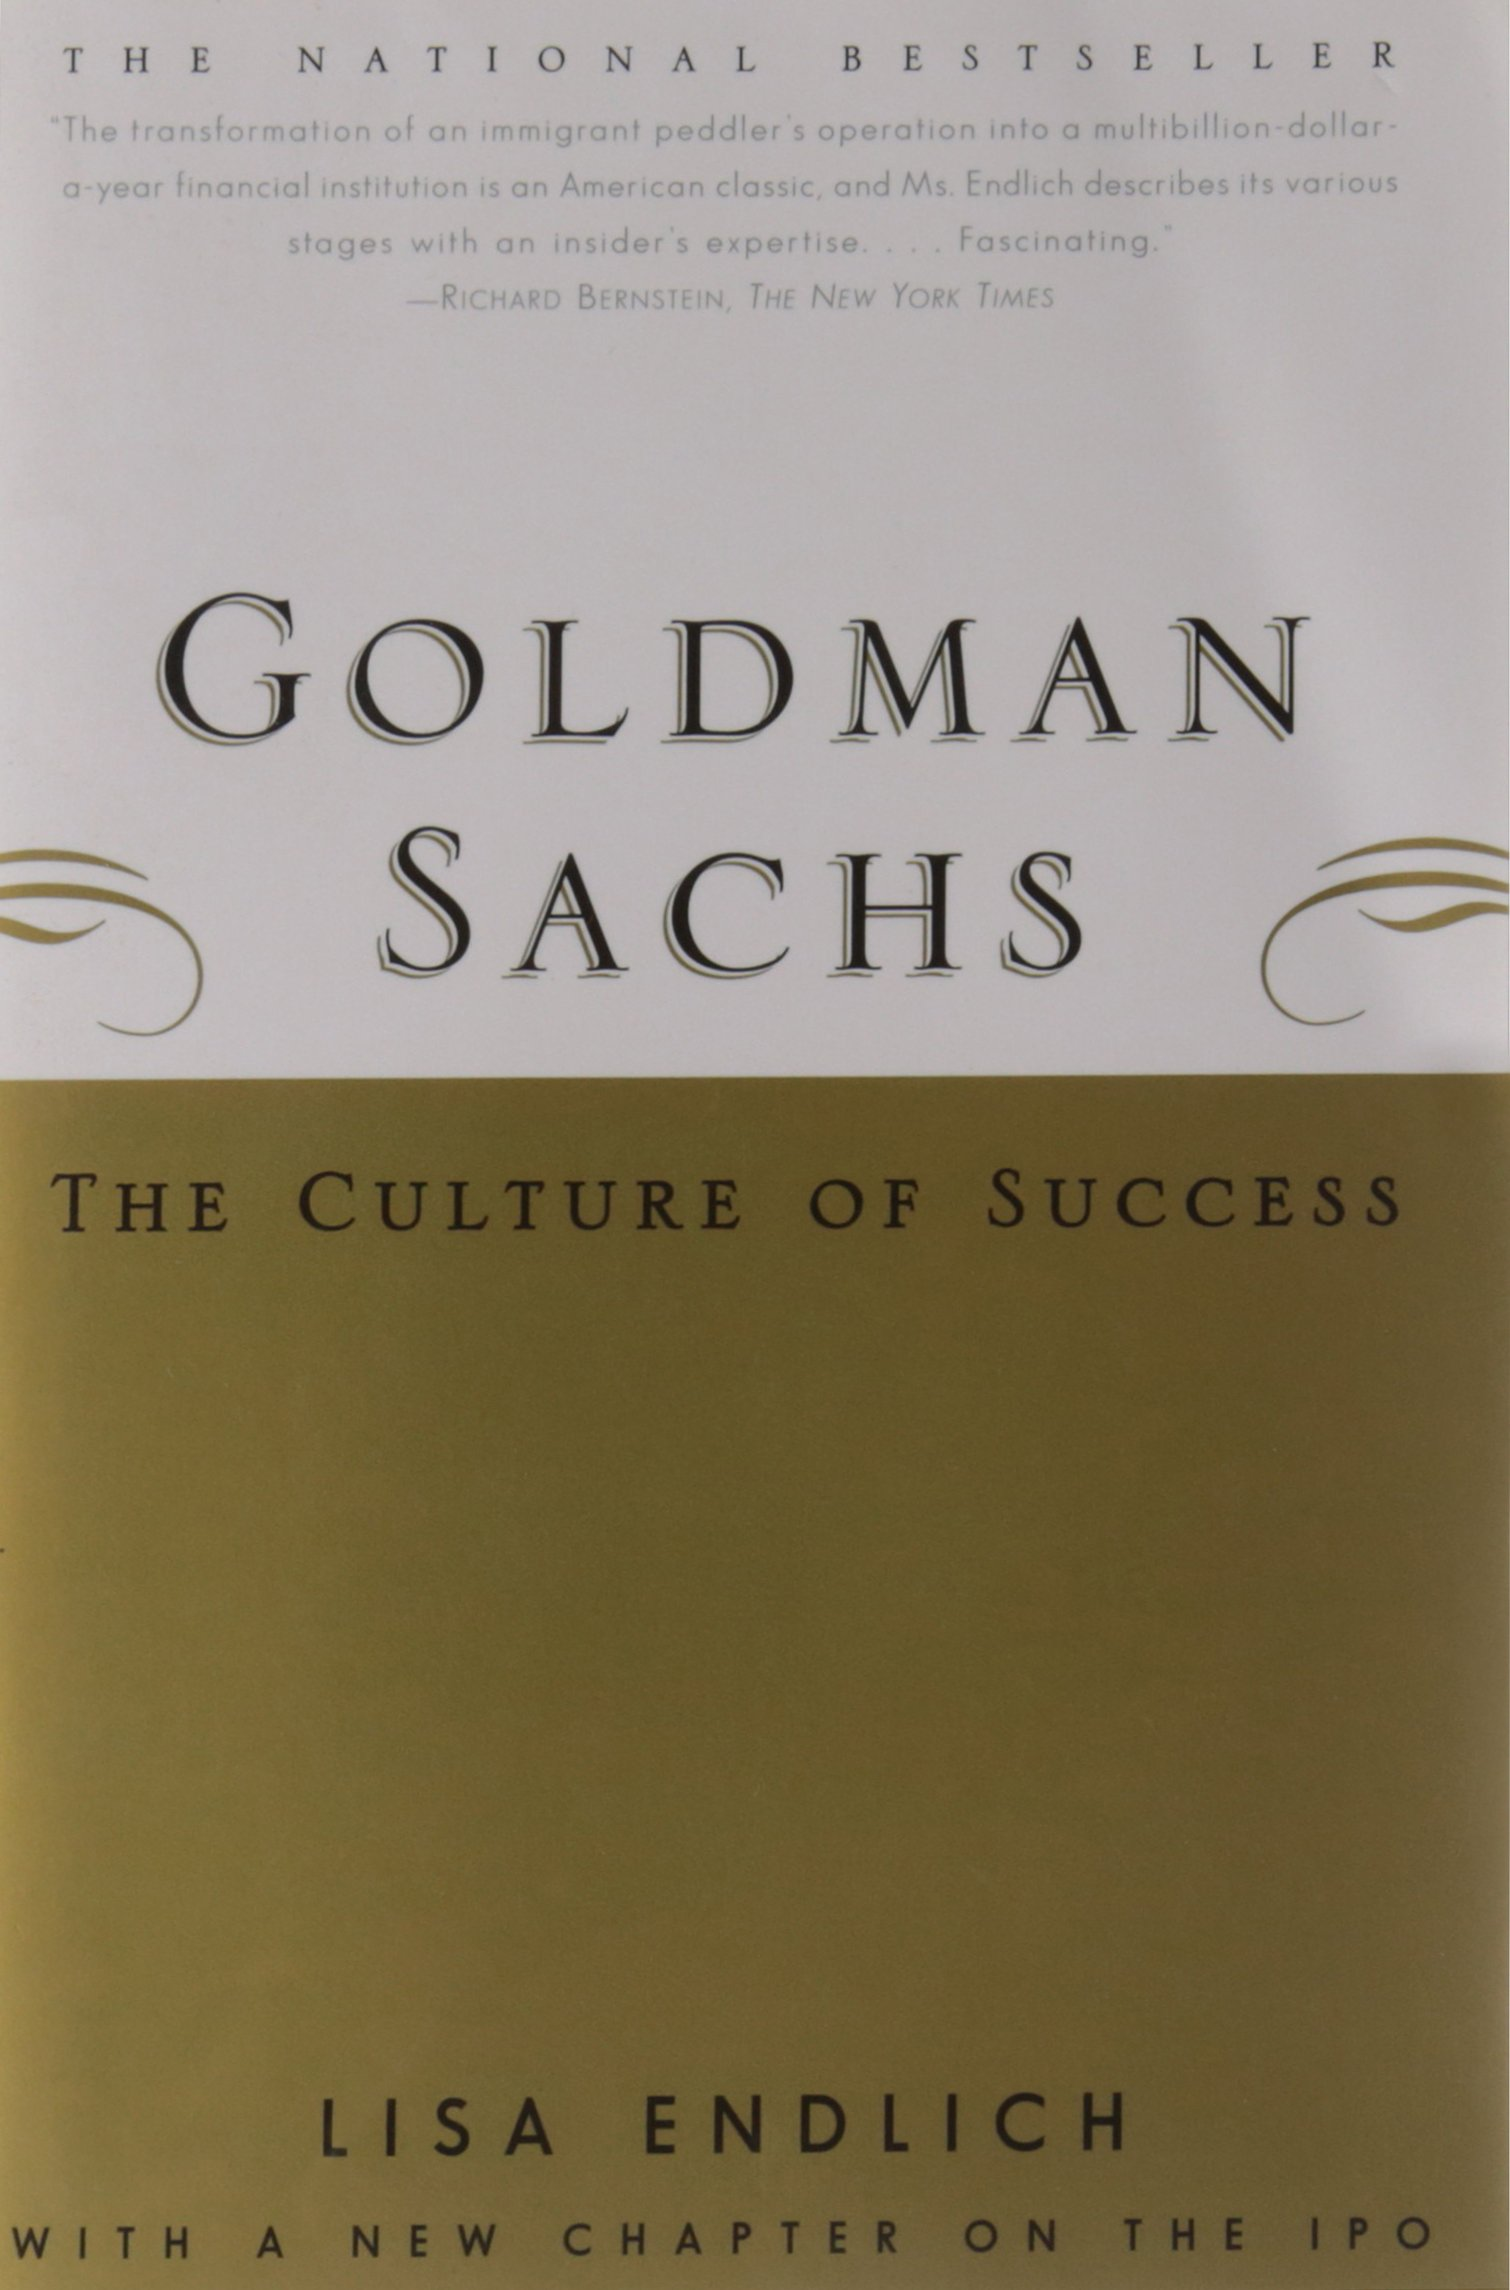 Goldman sachs research paper on inversions